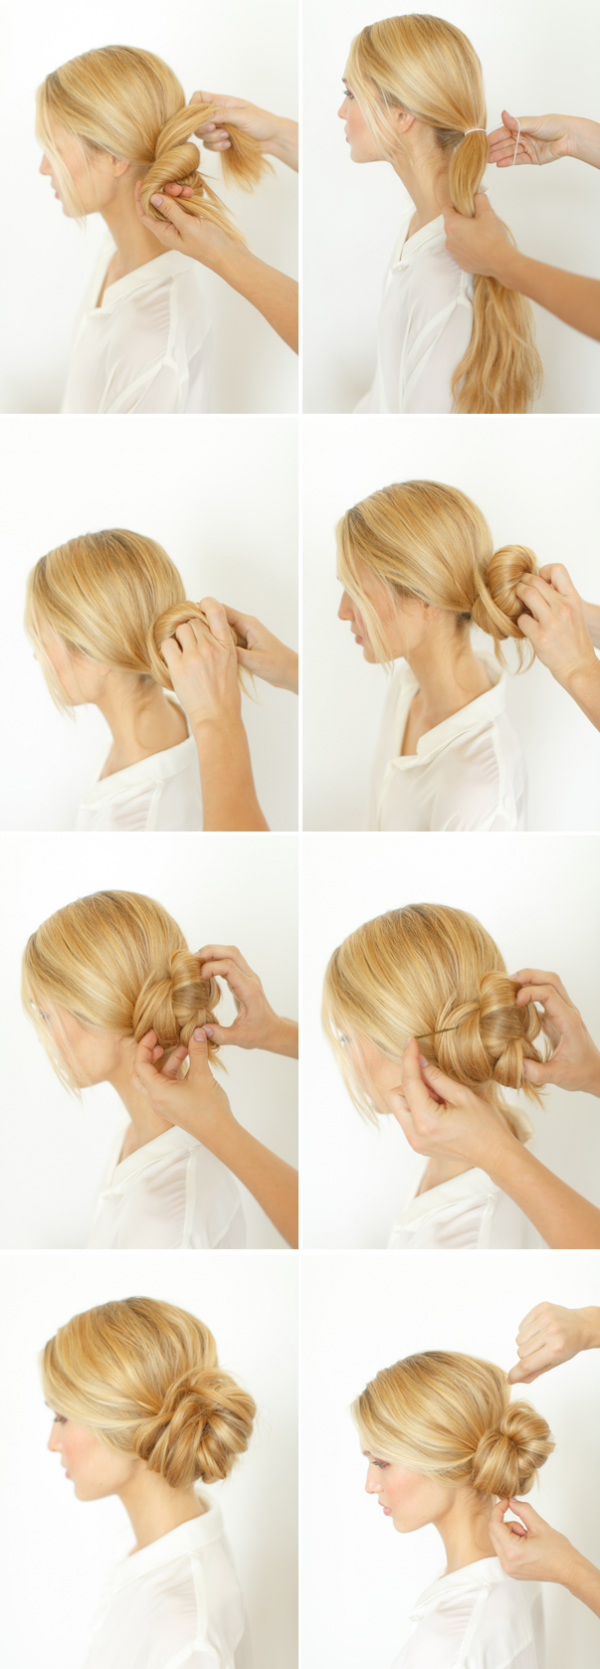 Diy Knotted Bun Wedding Hairstyle (Gallery 17 of 20)